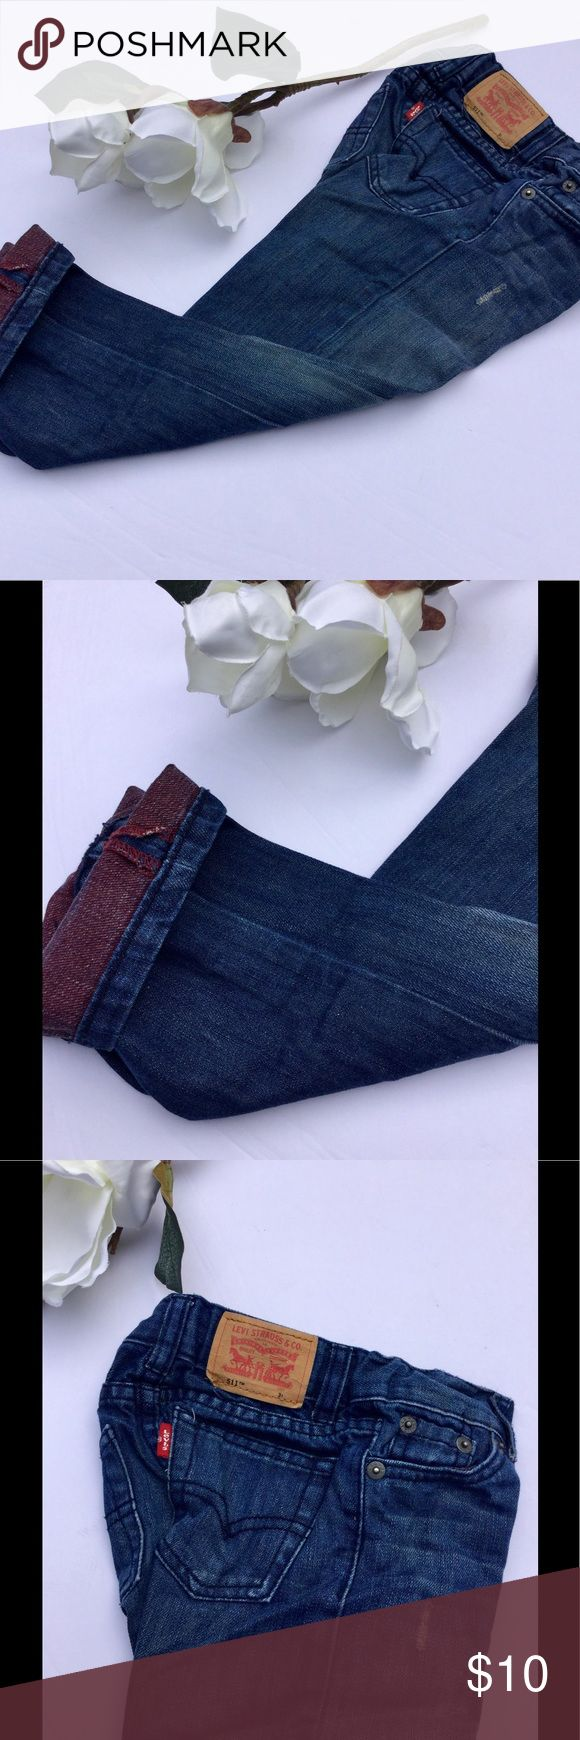 ⚜️Levi's 511 Slim 3t Jeans⚜️ Levi's 511 3t jean⚜️Two tone Jeans with burgundy cuffs for major cuteness⚜️Adjustable waistband⚜️Dark wash with distressing styling⚜️Good condition and no stains Levi's Bottoms Jeans